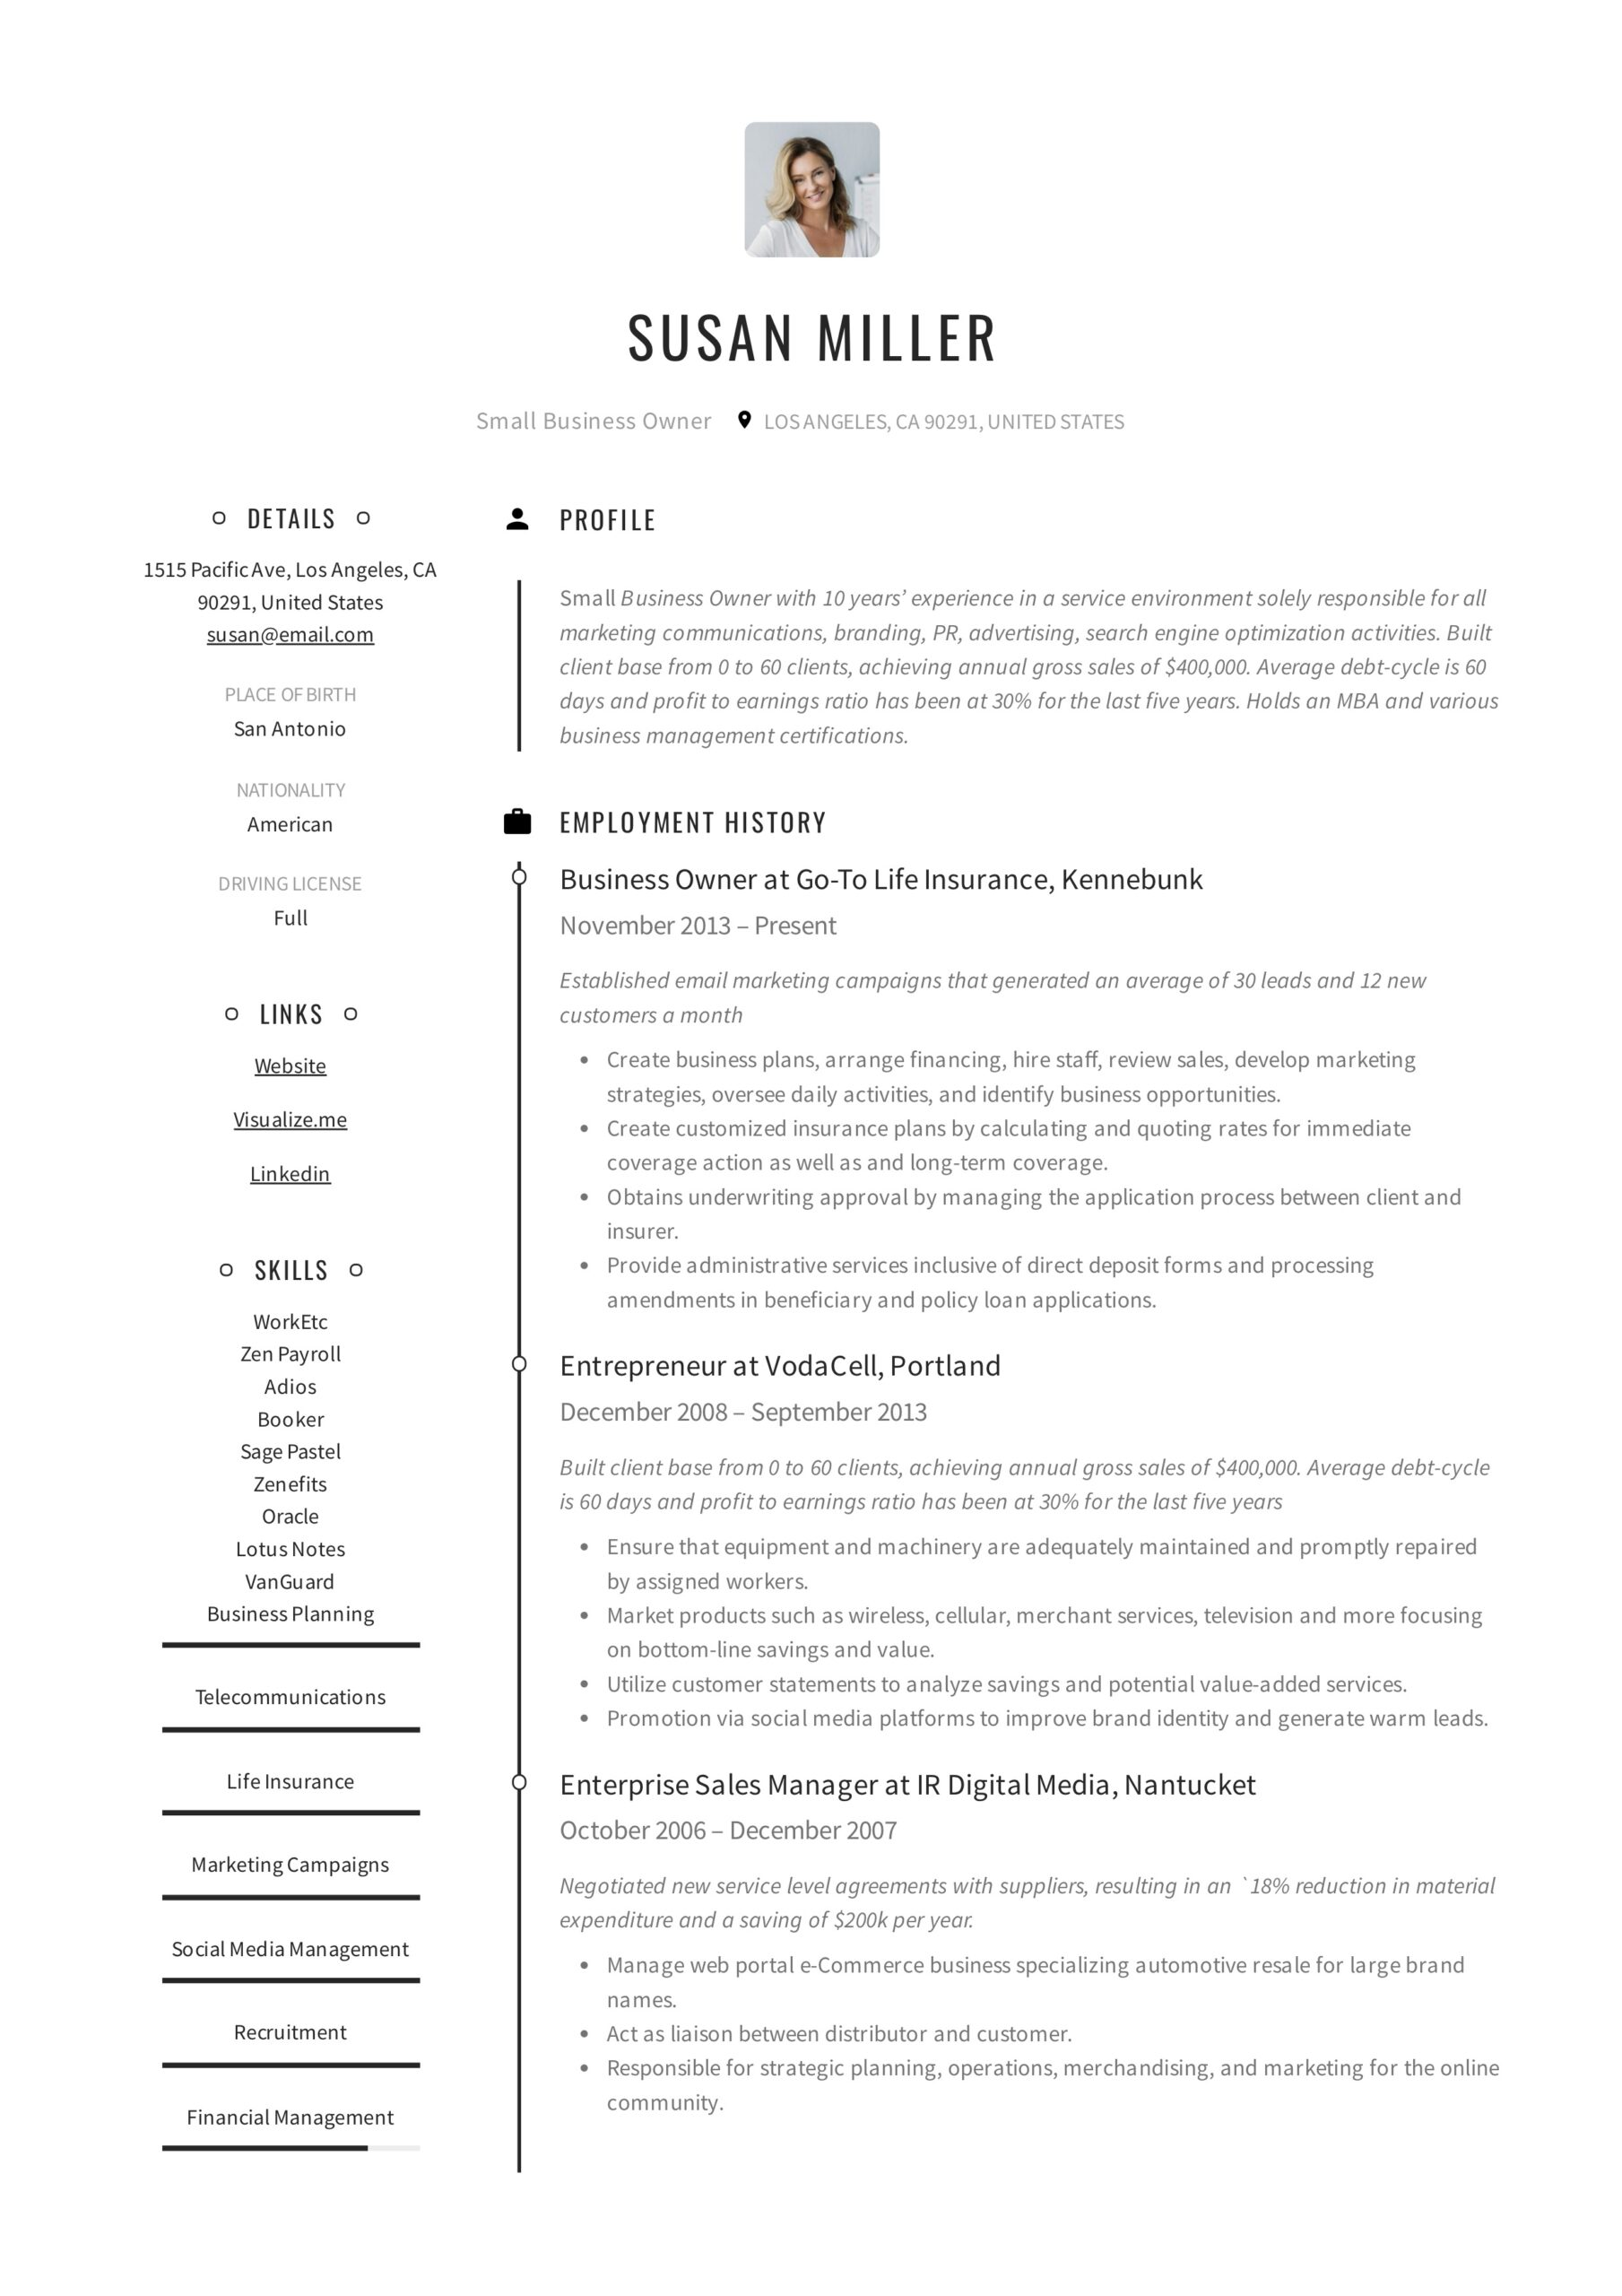 small business owner resume guide examples pdf job description example physical therapist Resume Business Owner Job Description Resume